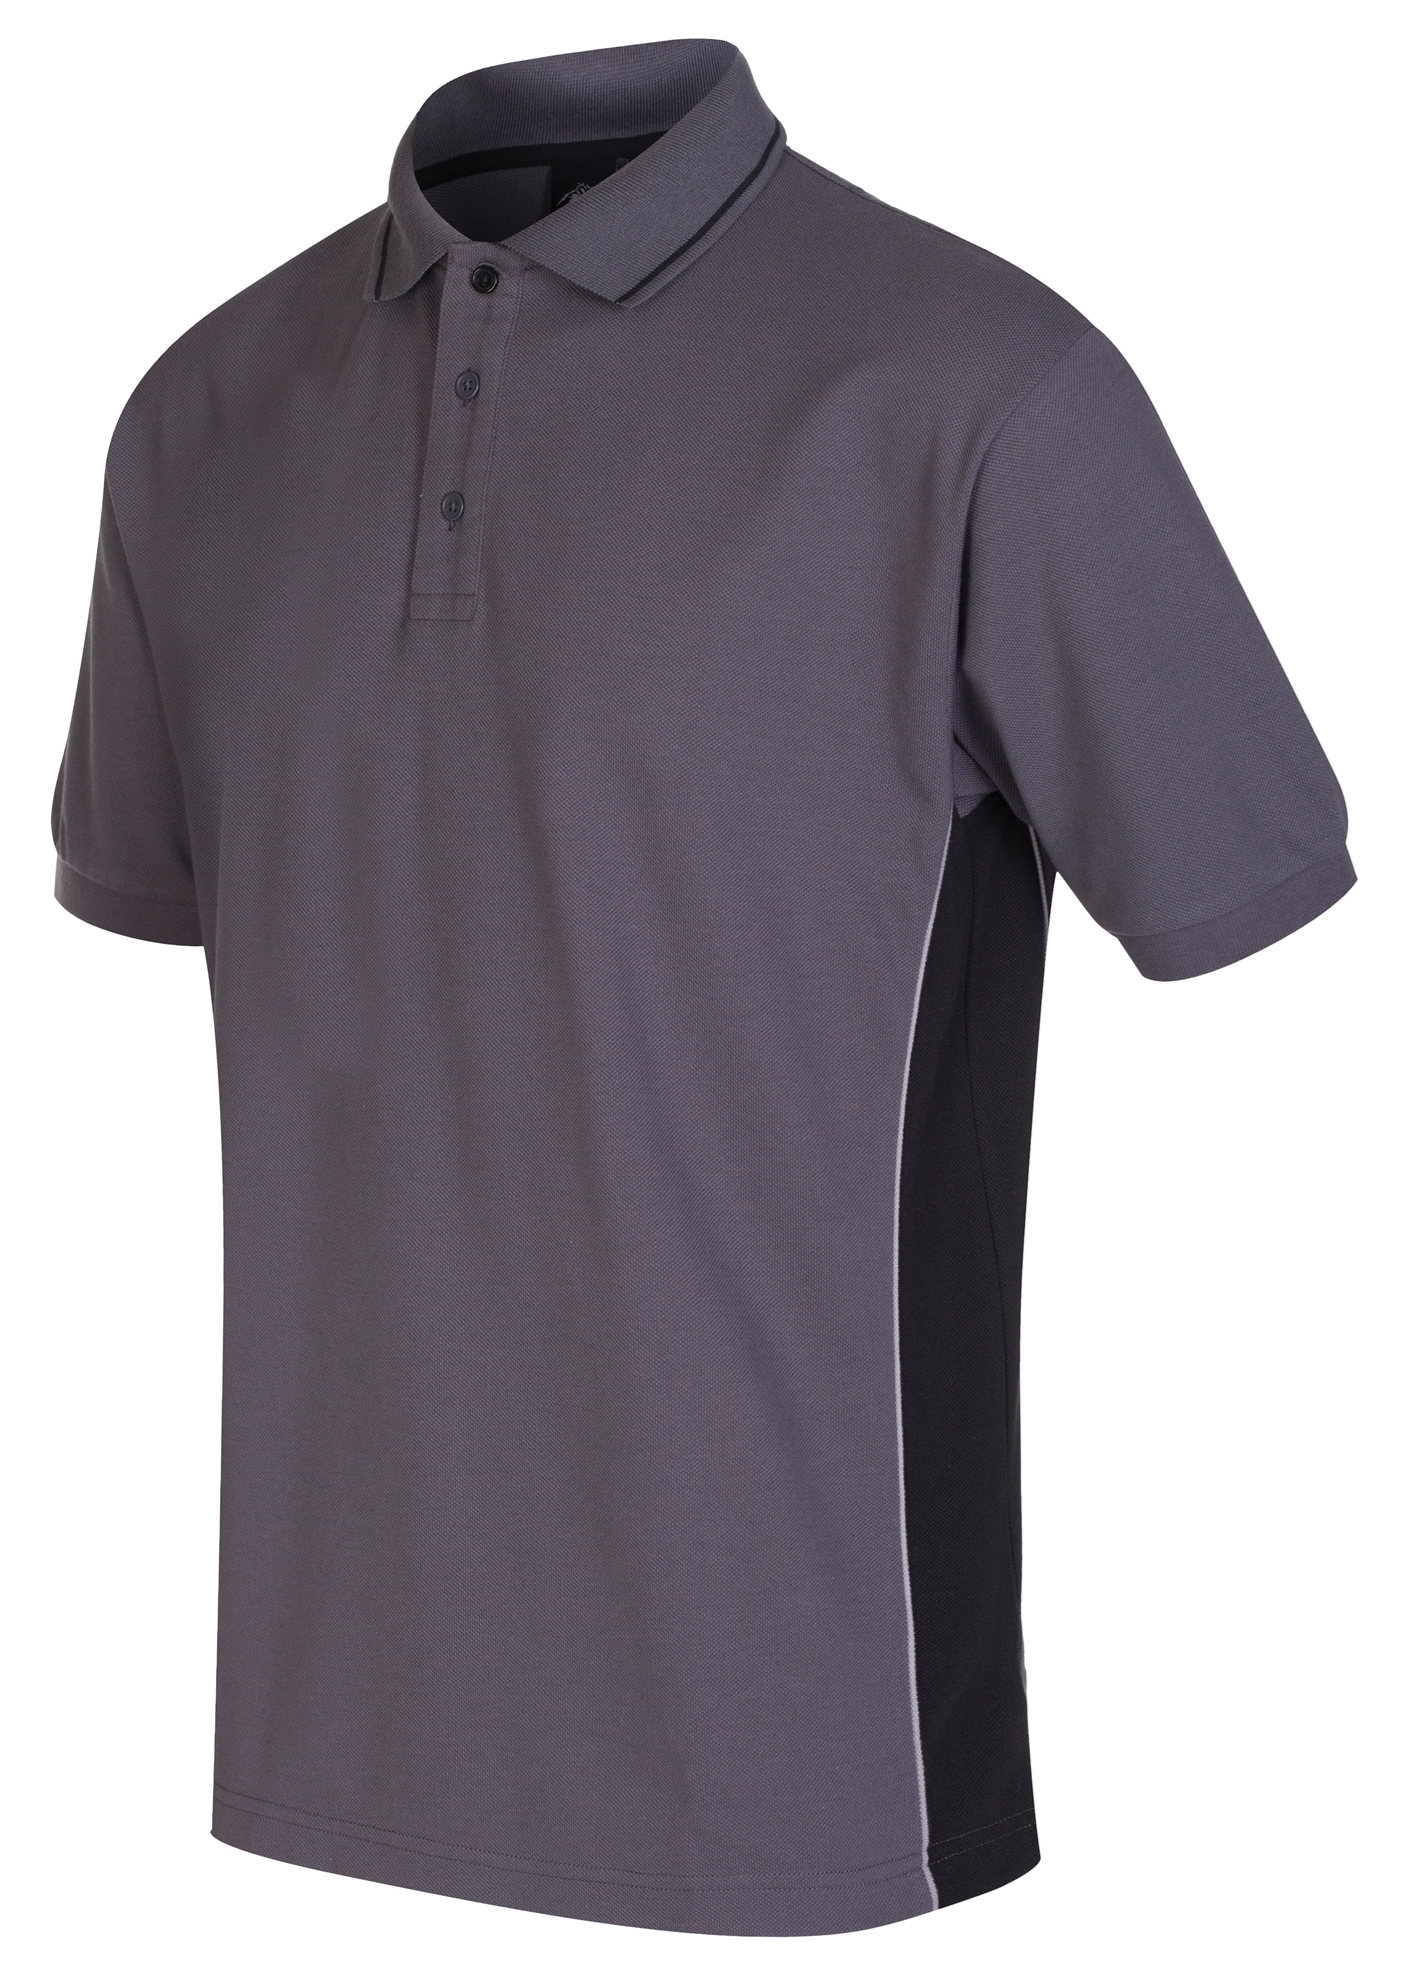 Picture of Gryzko Unisex Contrast Polo Shirt - Convoy Grey / Black